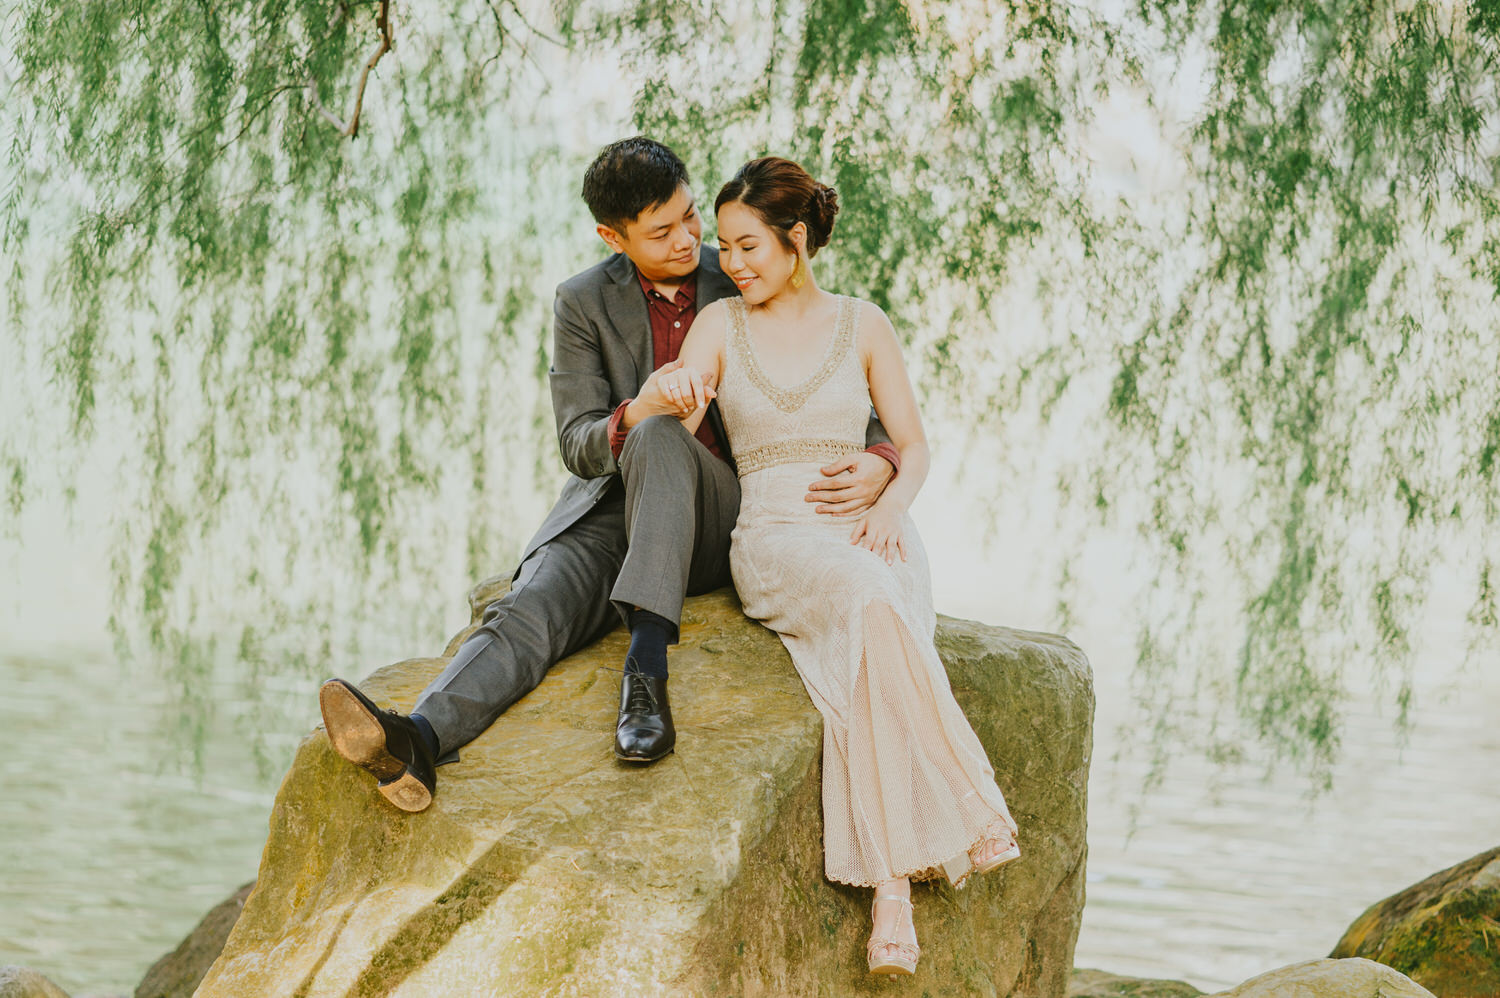 singapore prewedding destination - singapore wedding - diktatphotography - kadek artayasa - nikole + ardika - 10